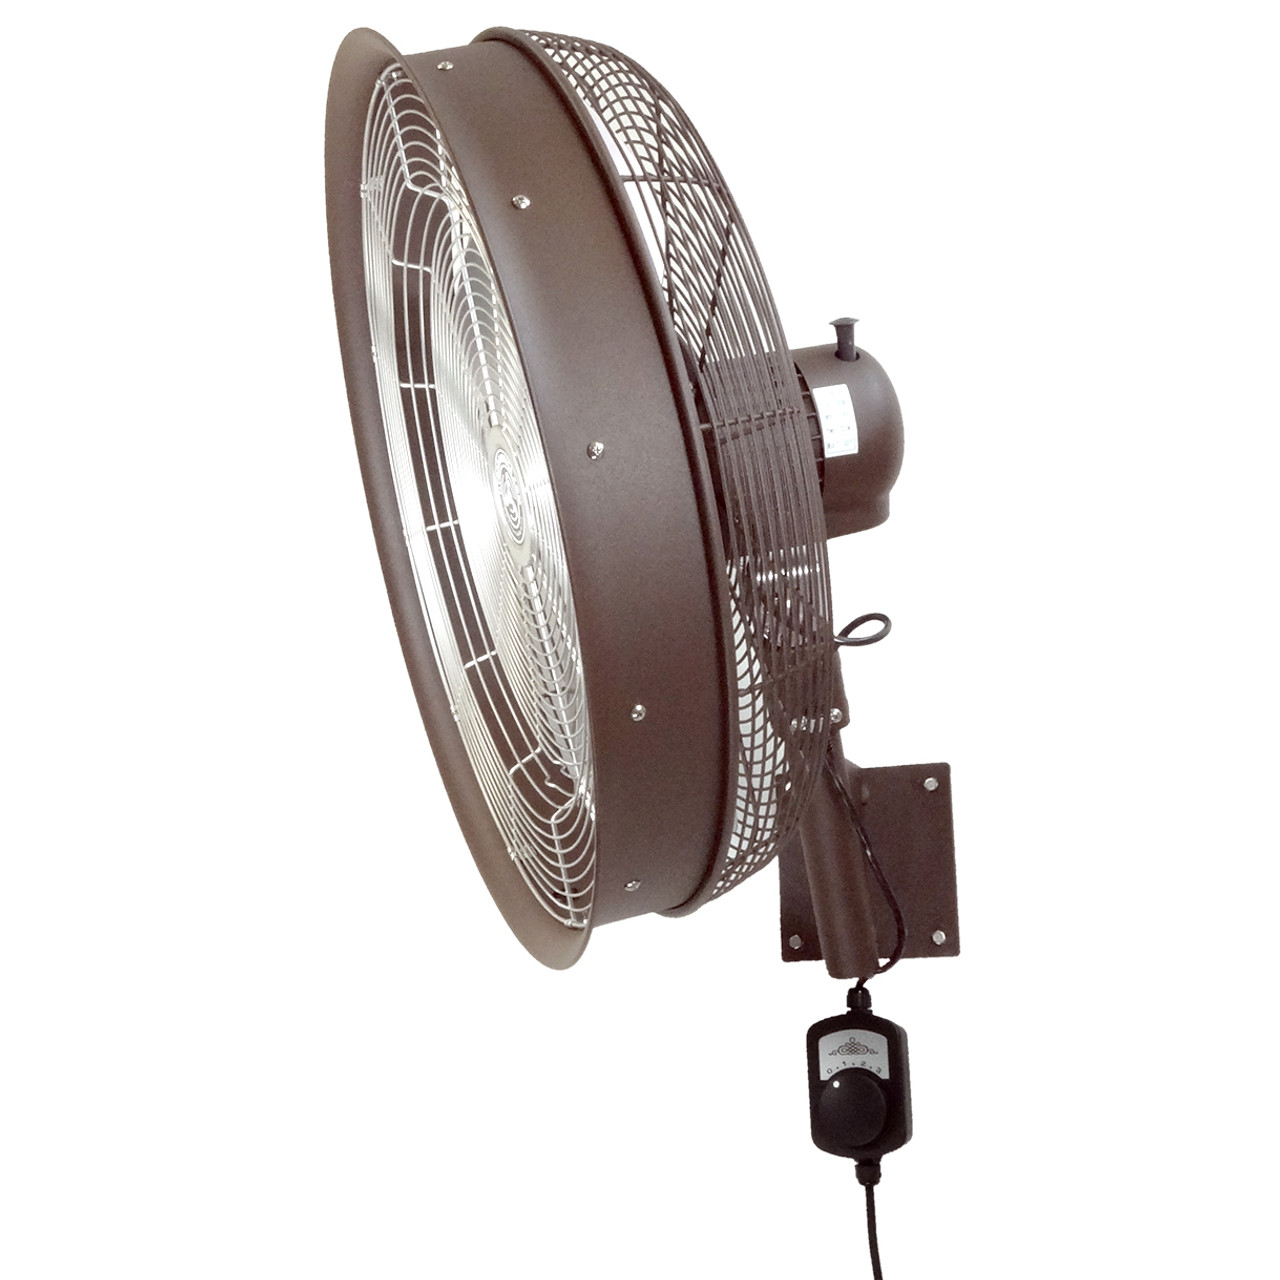 24 Inch Shrouded Outdoor Wall Mount Oscillating Fan 3 Speed Control on Cord